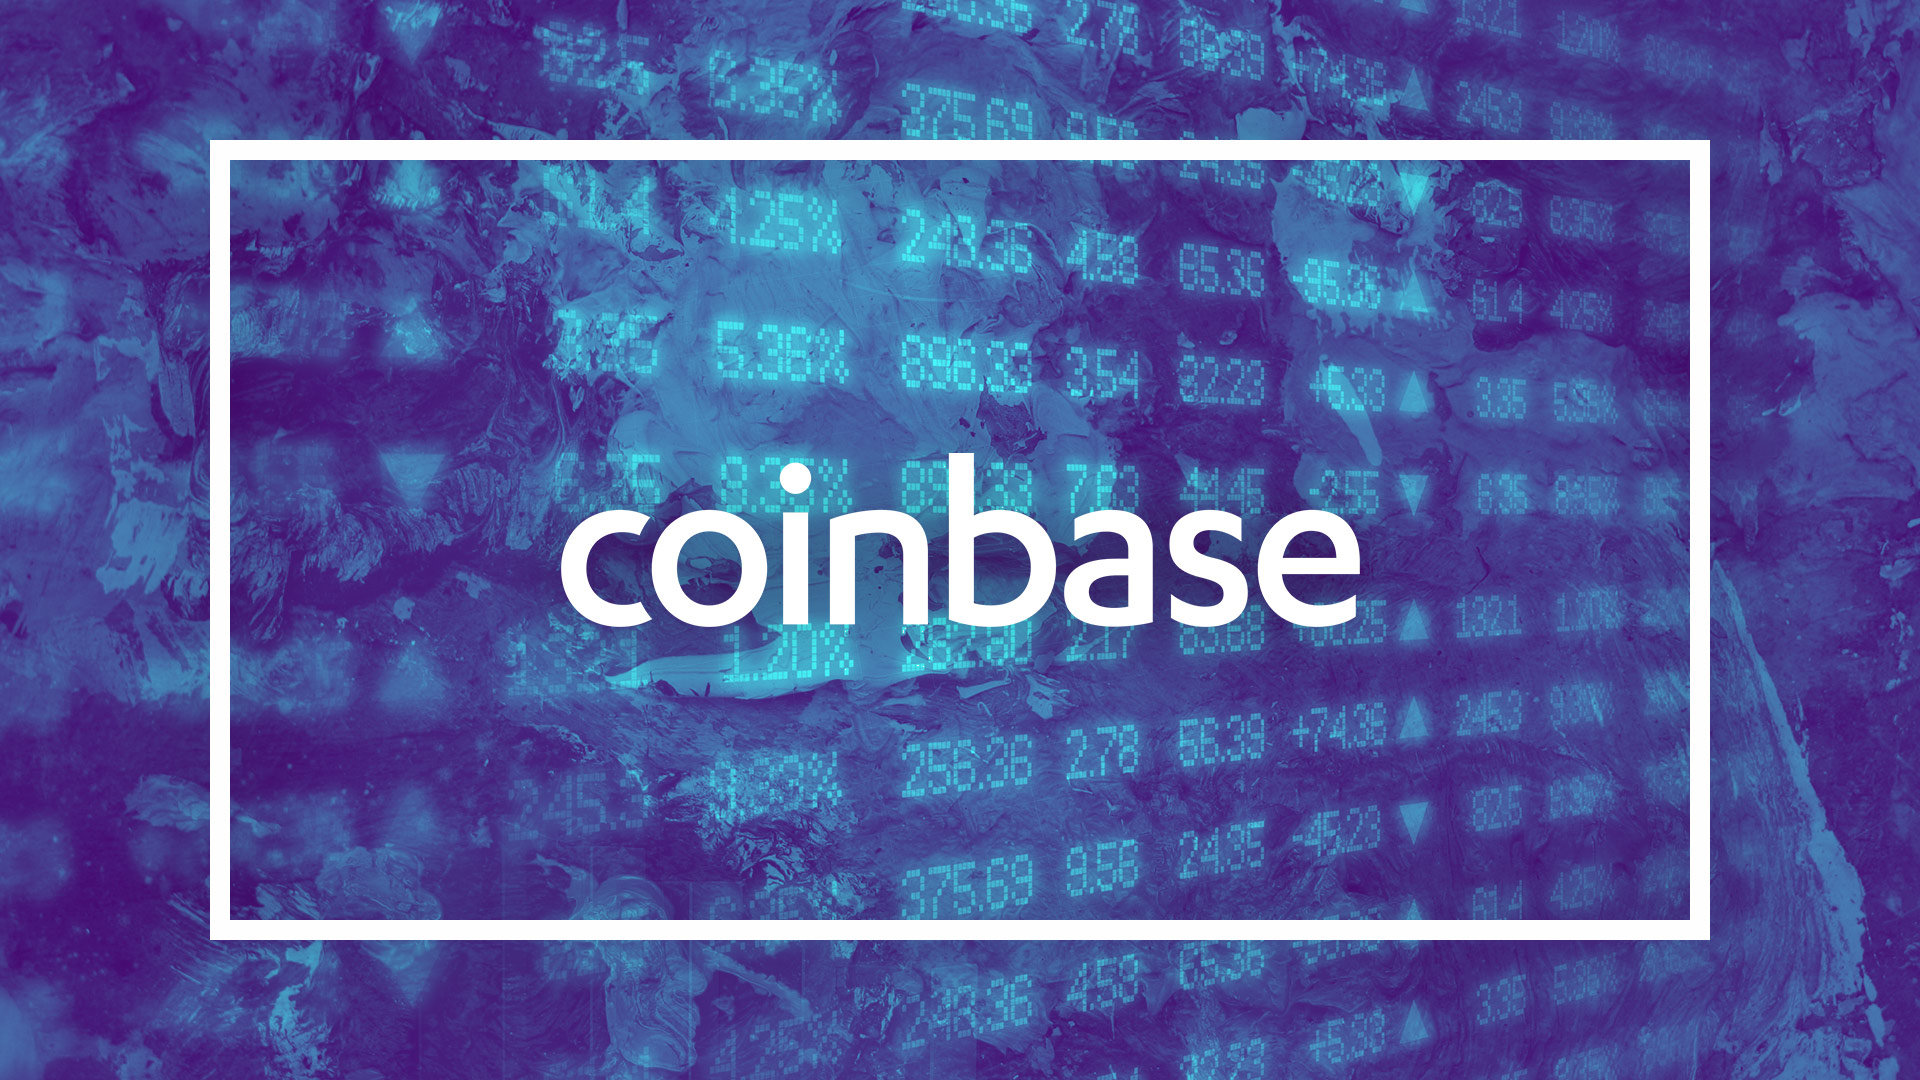 Fed Court says Coinbase can be held negligent for allowing